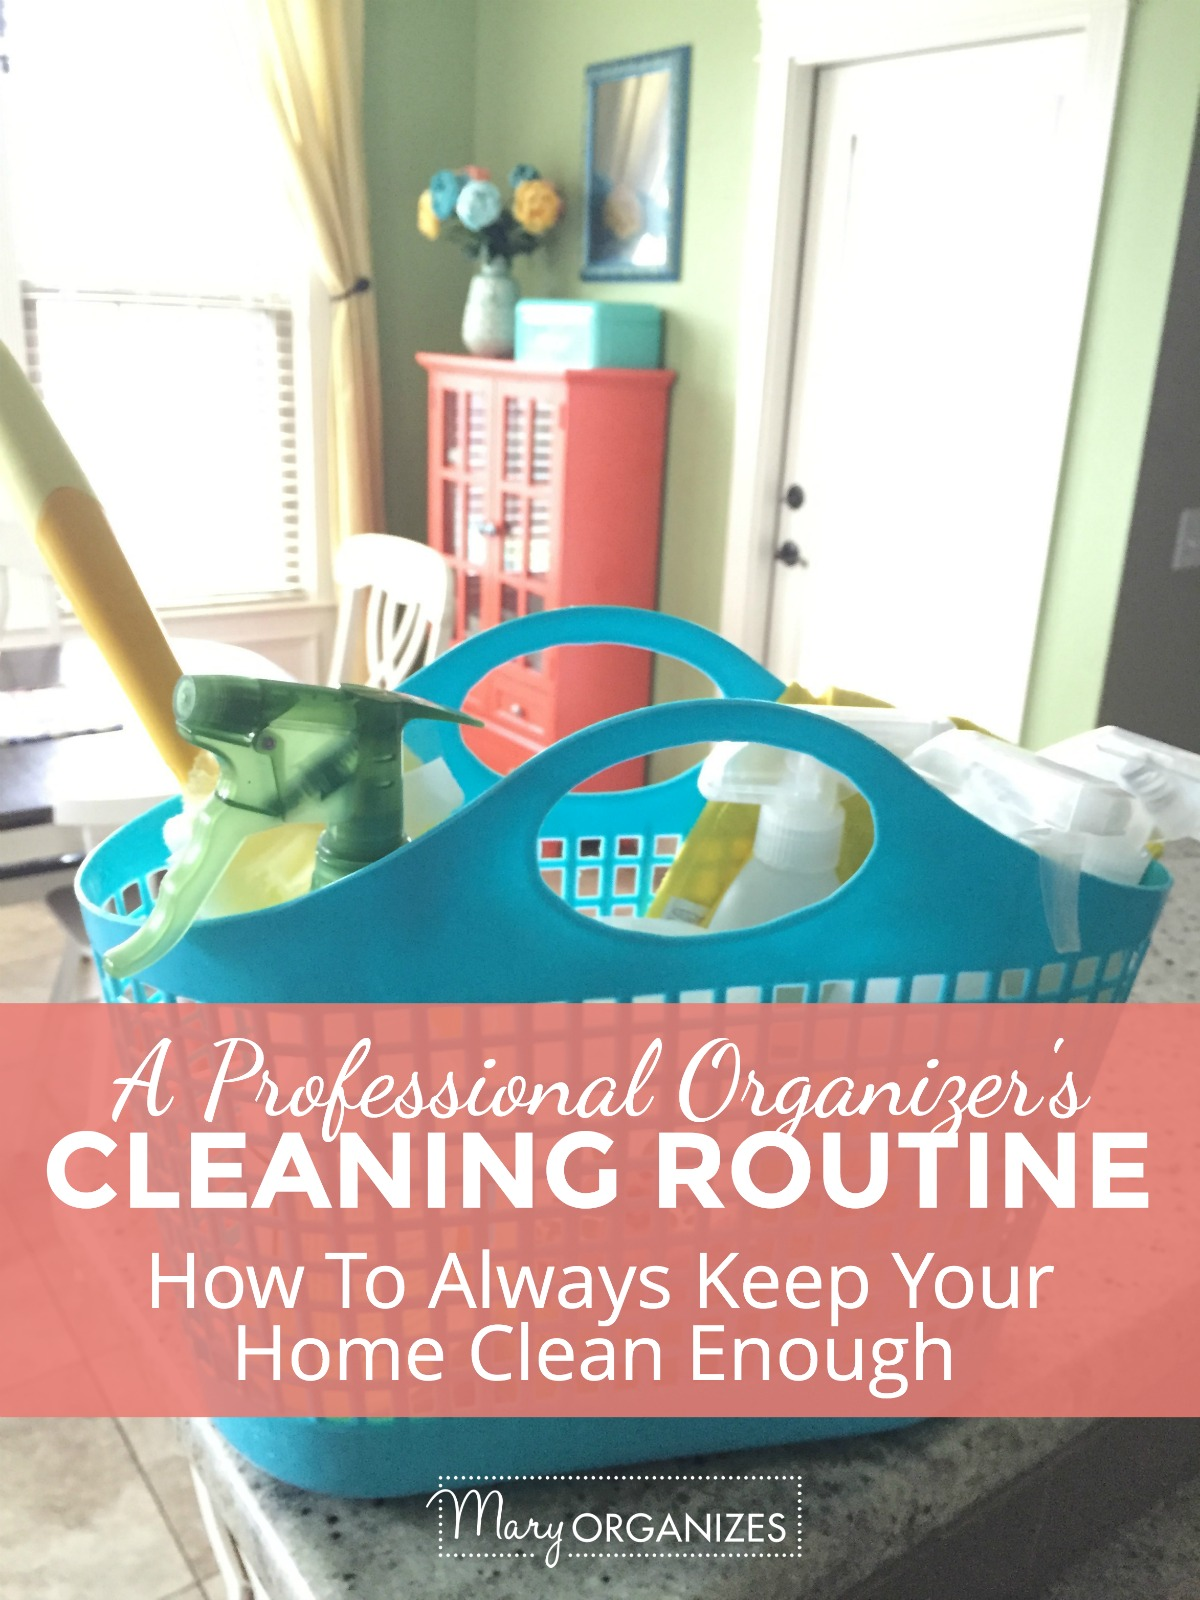 A Professional Organizers Cleaning Routine - How to Always Keep Your Home Clean Enough